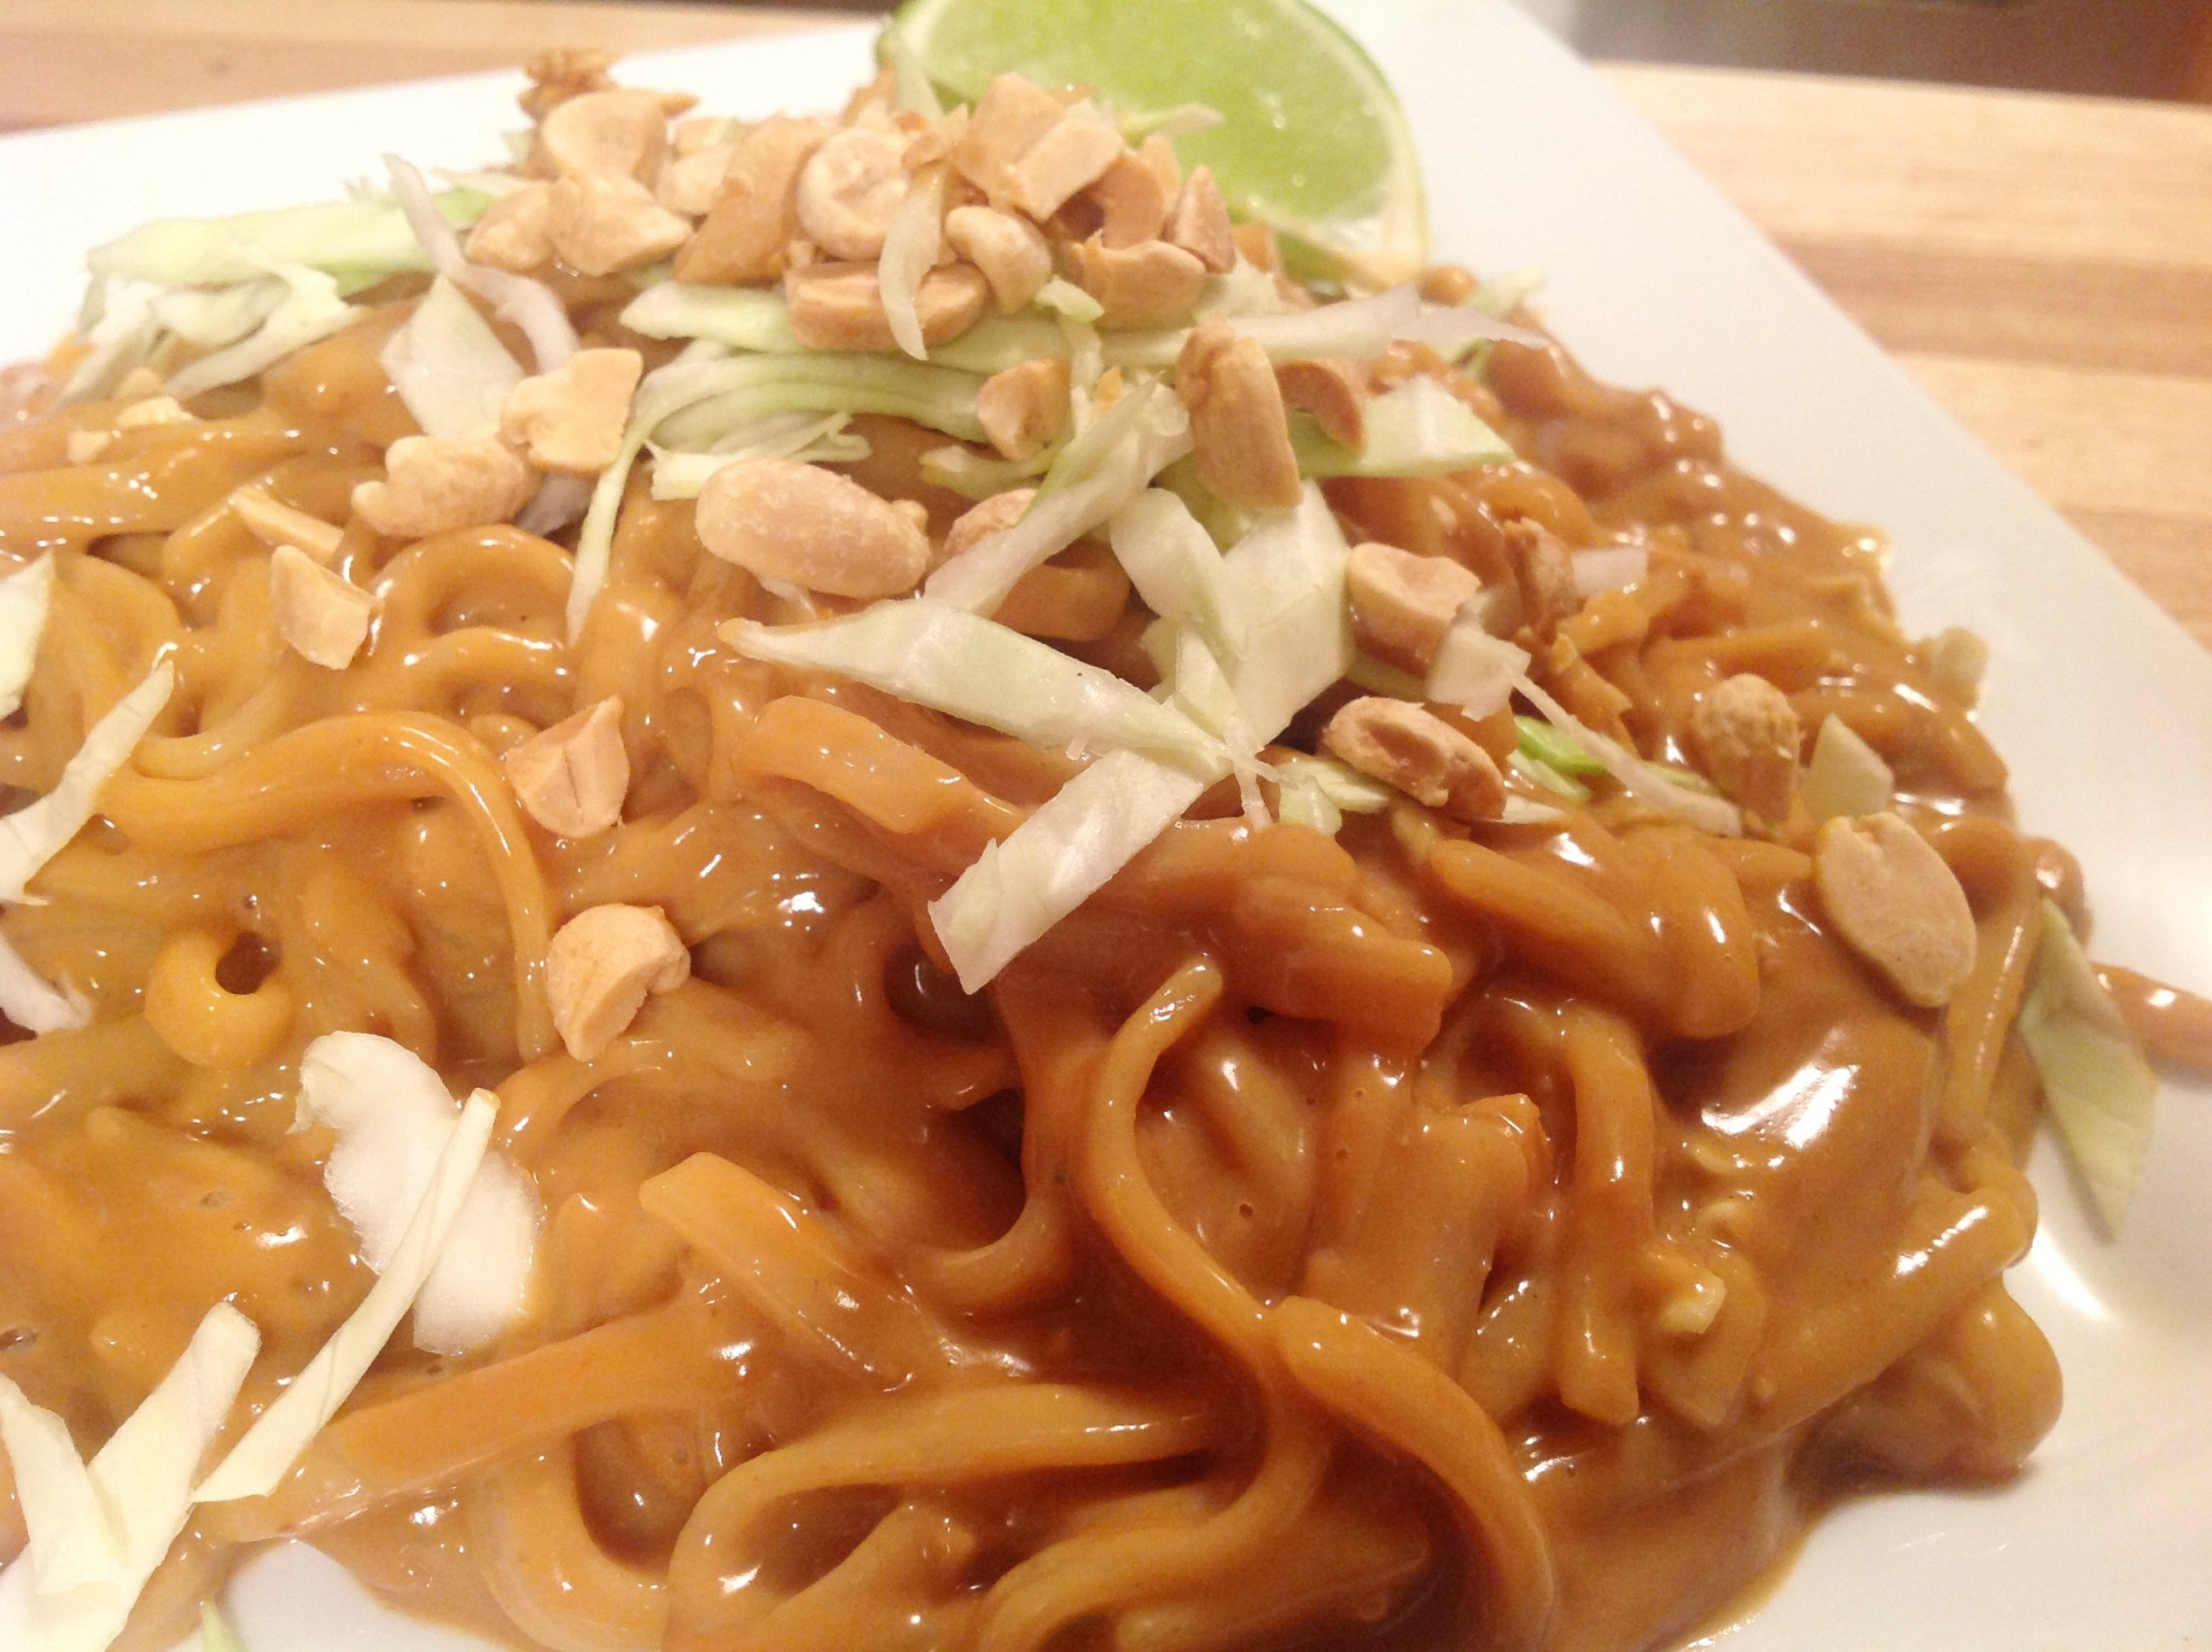 VeganMoFo Day #2Cold Rice Noodles in Spicy Thai Peanut Sauce